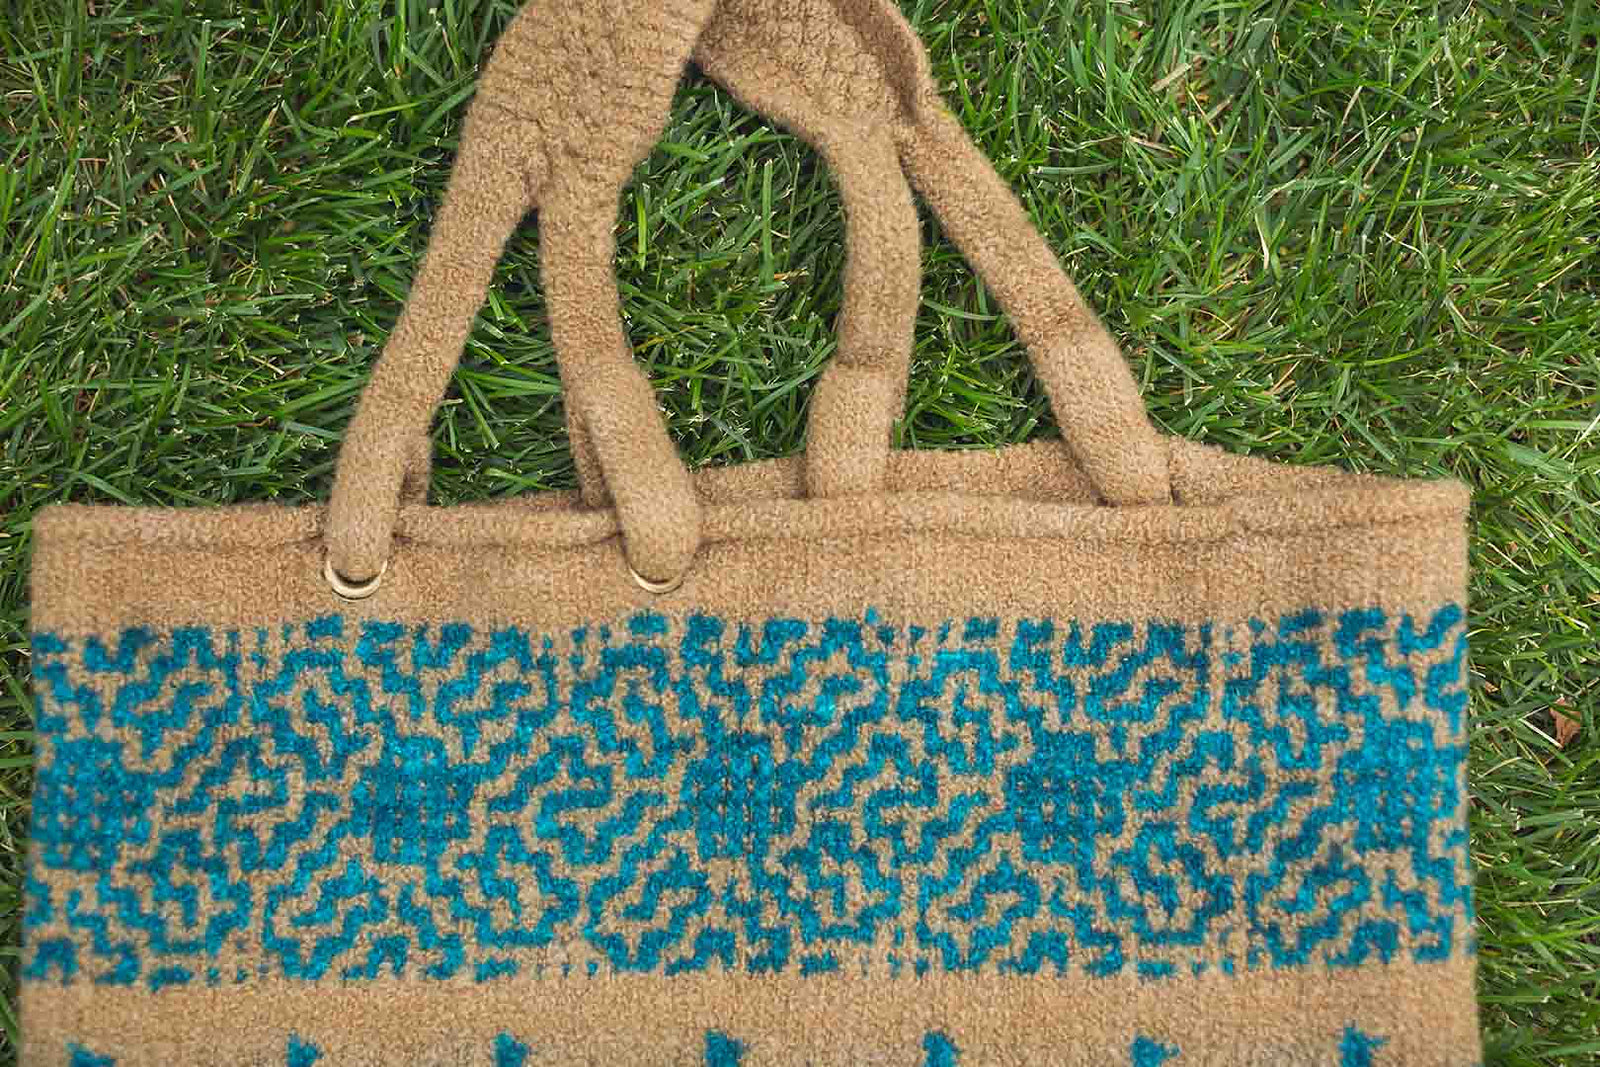 Win the 'Paca Bag Knitting Kit